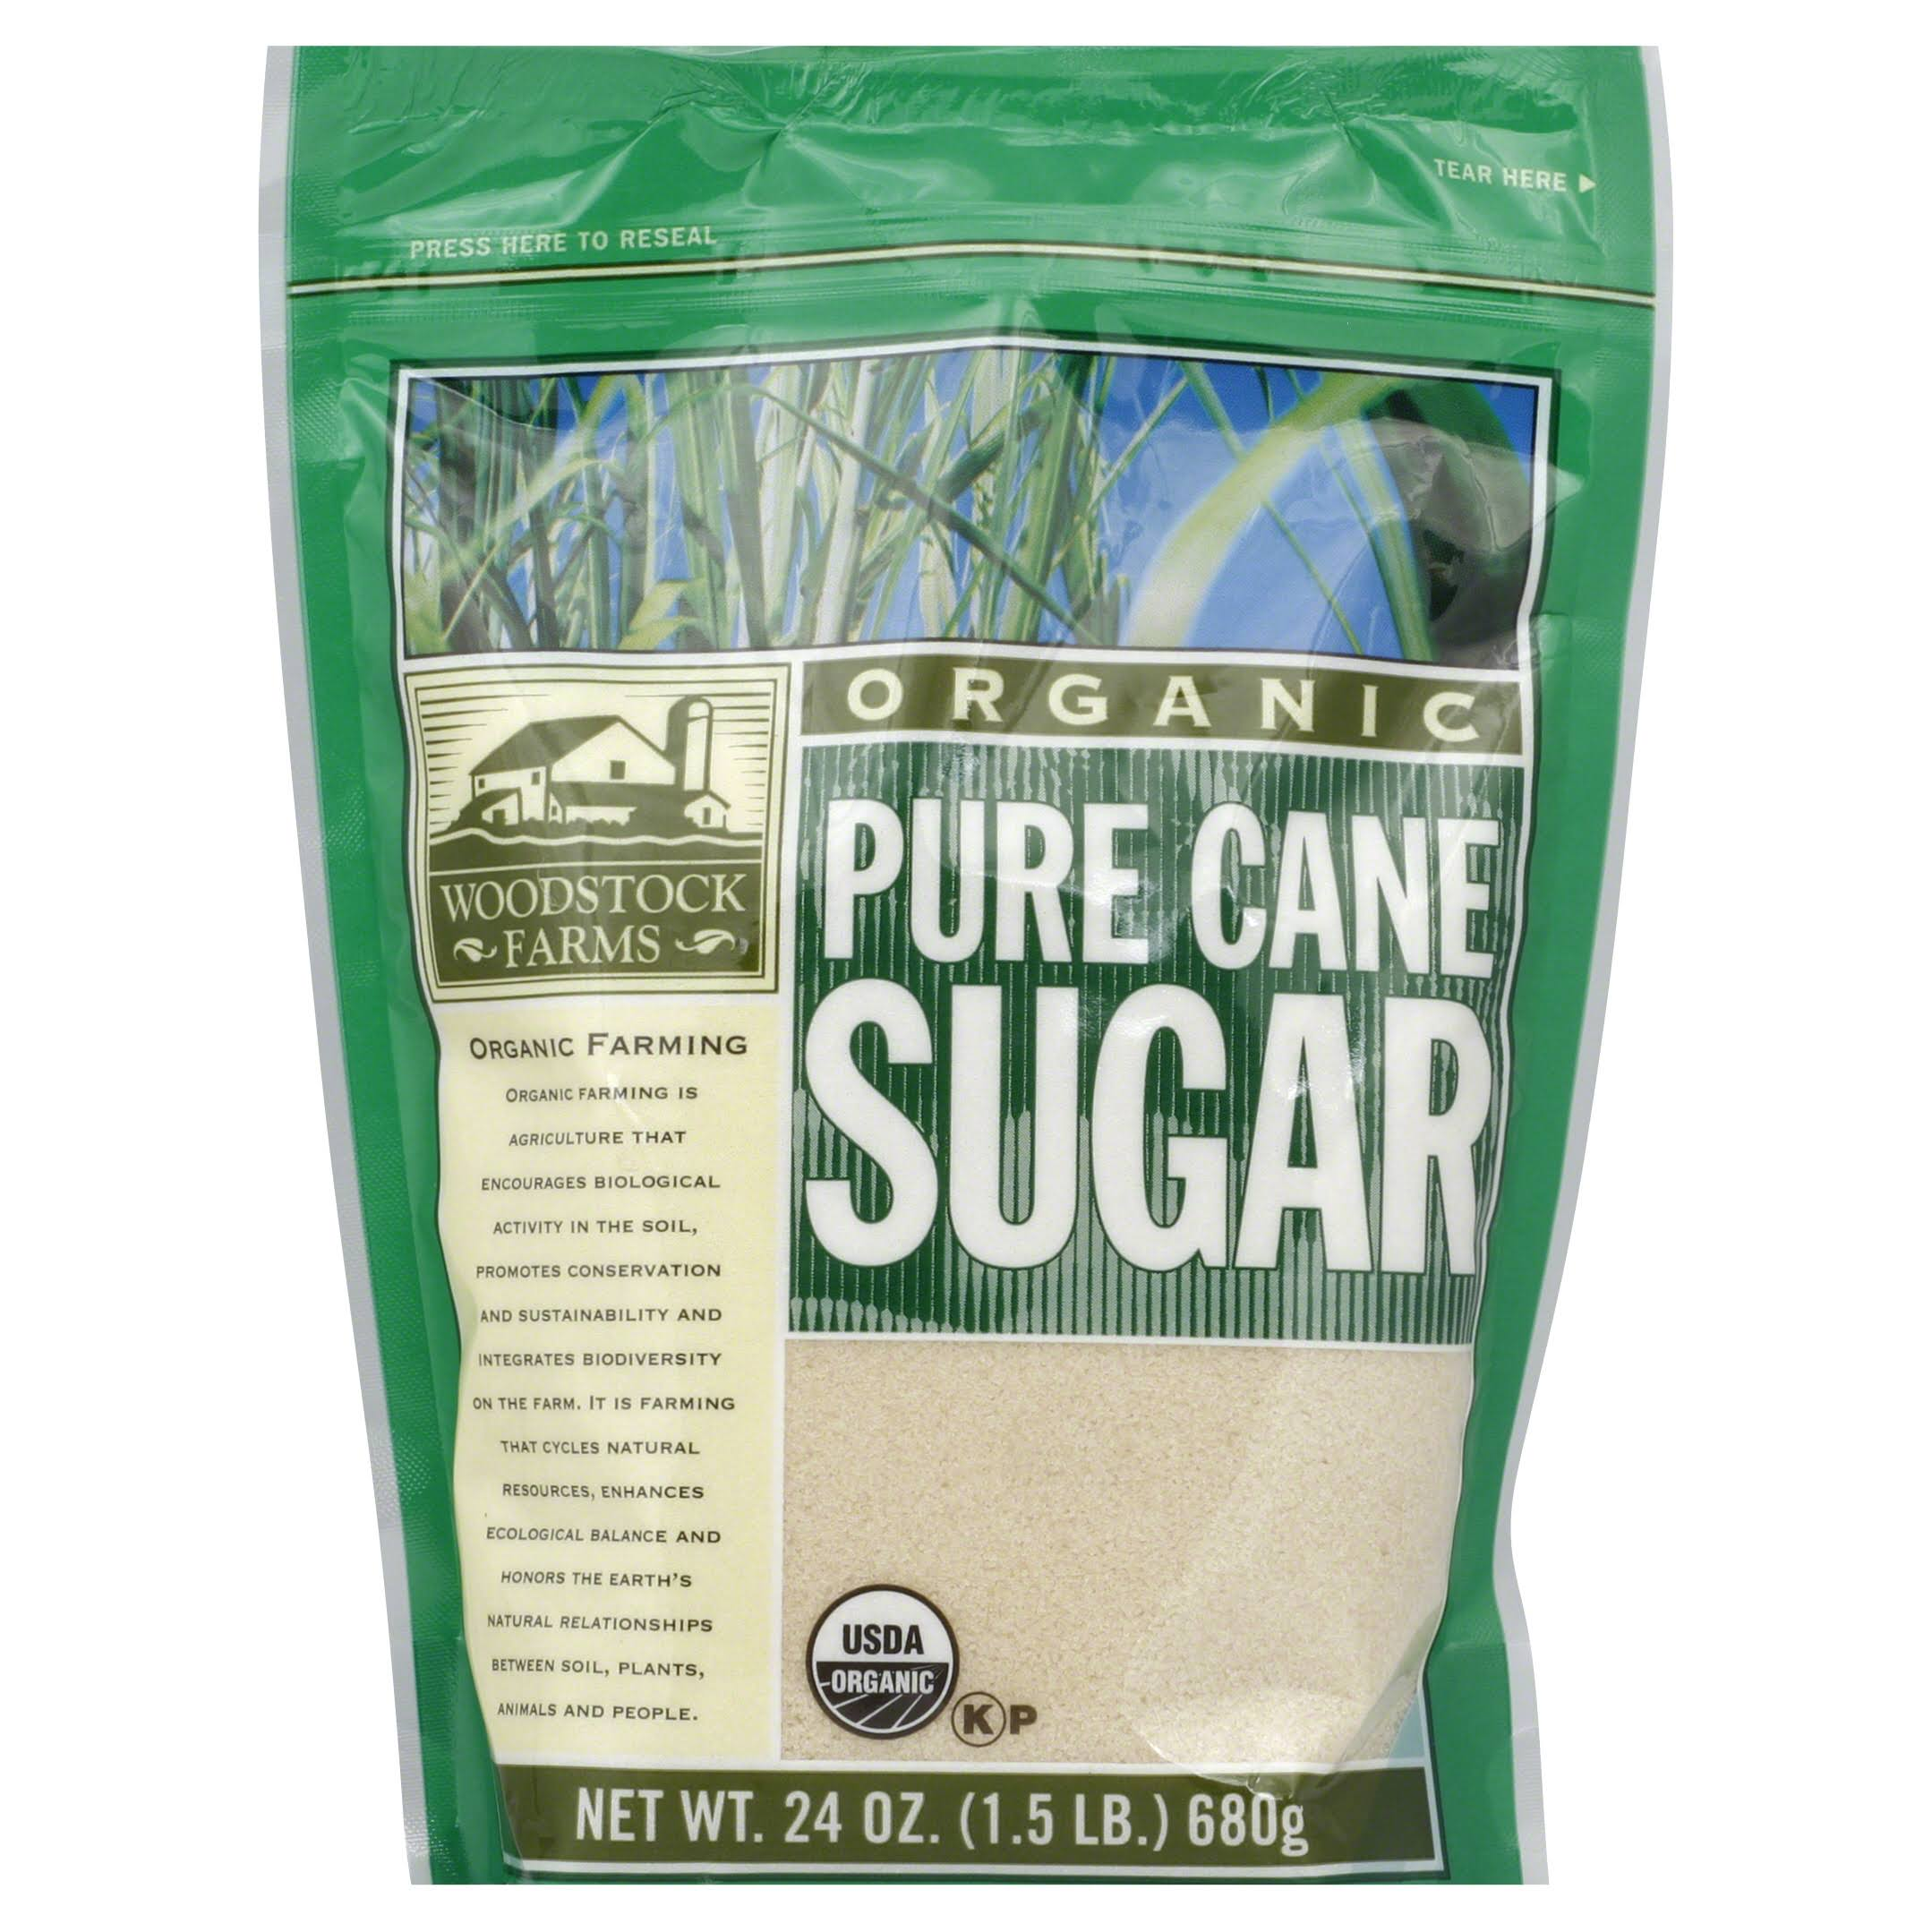 Woodstock Organic Pure Cane Sugar - 24 oz bag